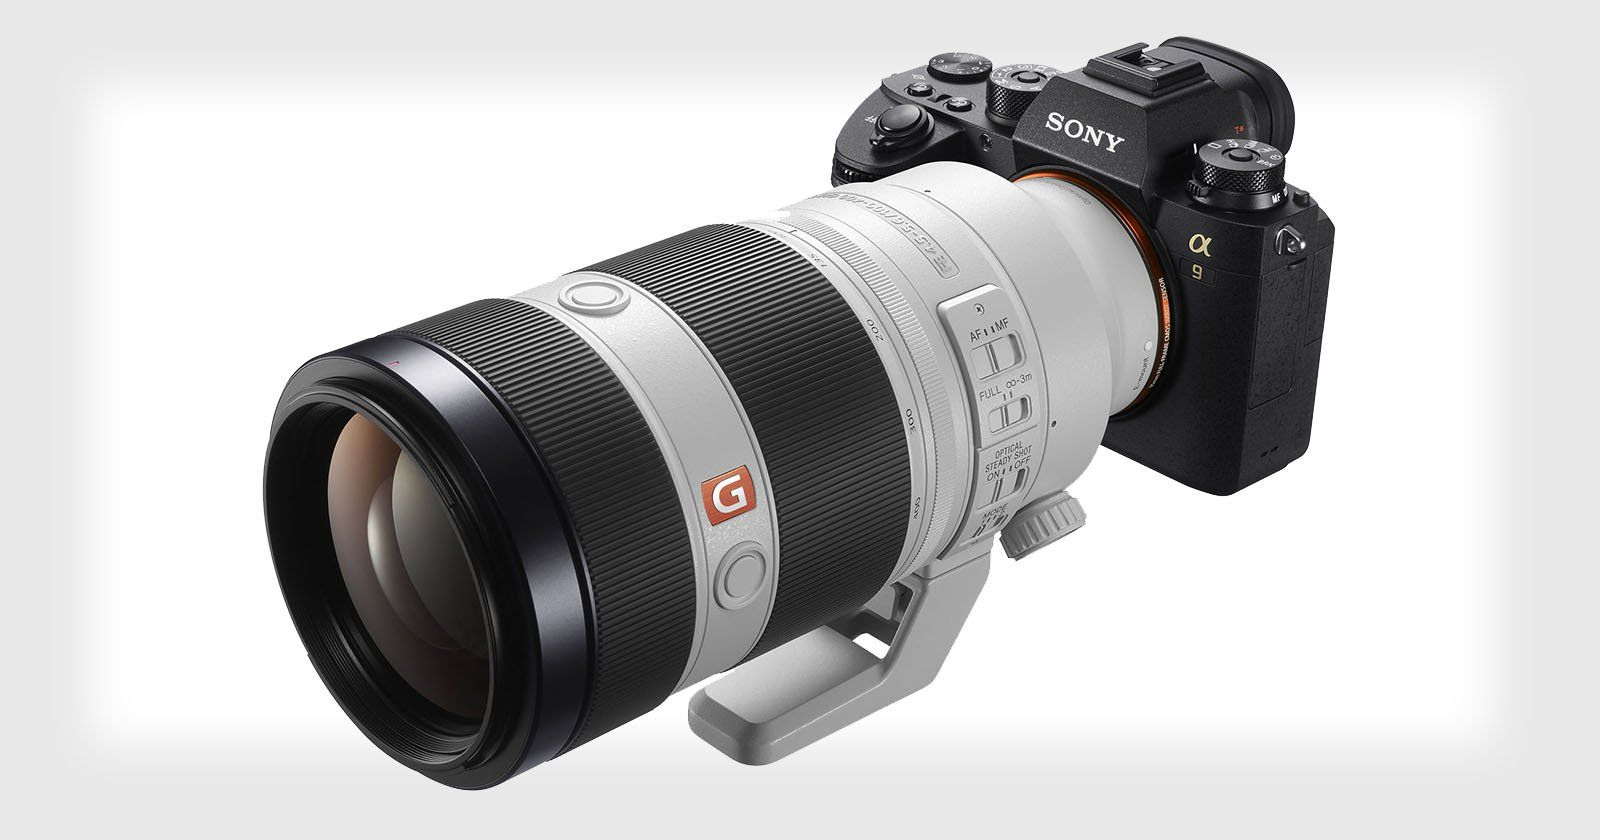 Sony Investing 9B in Image Sensors, Aims to Be Top Camera